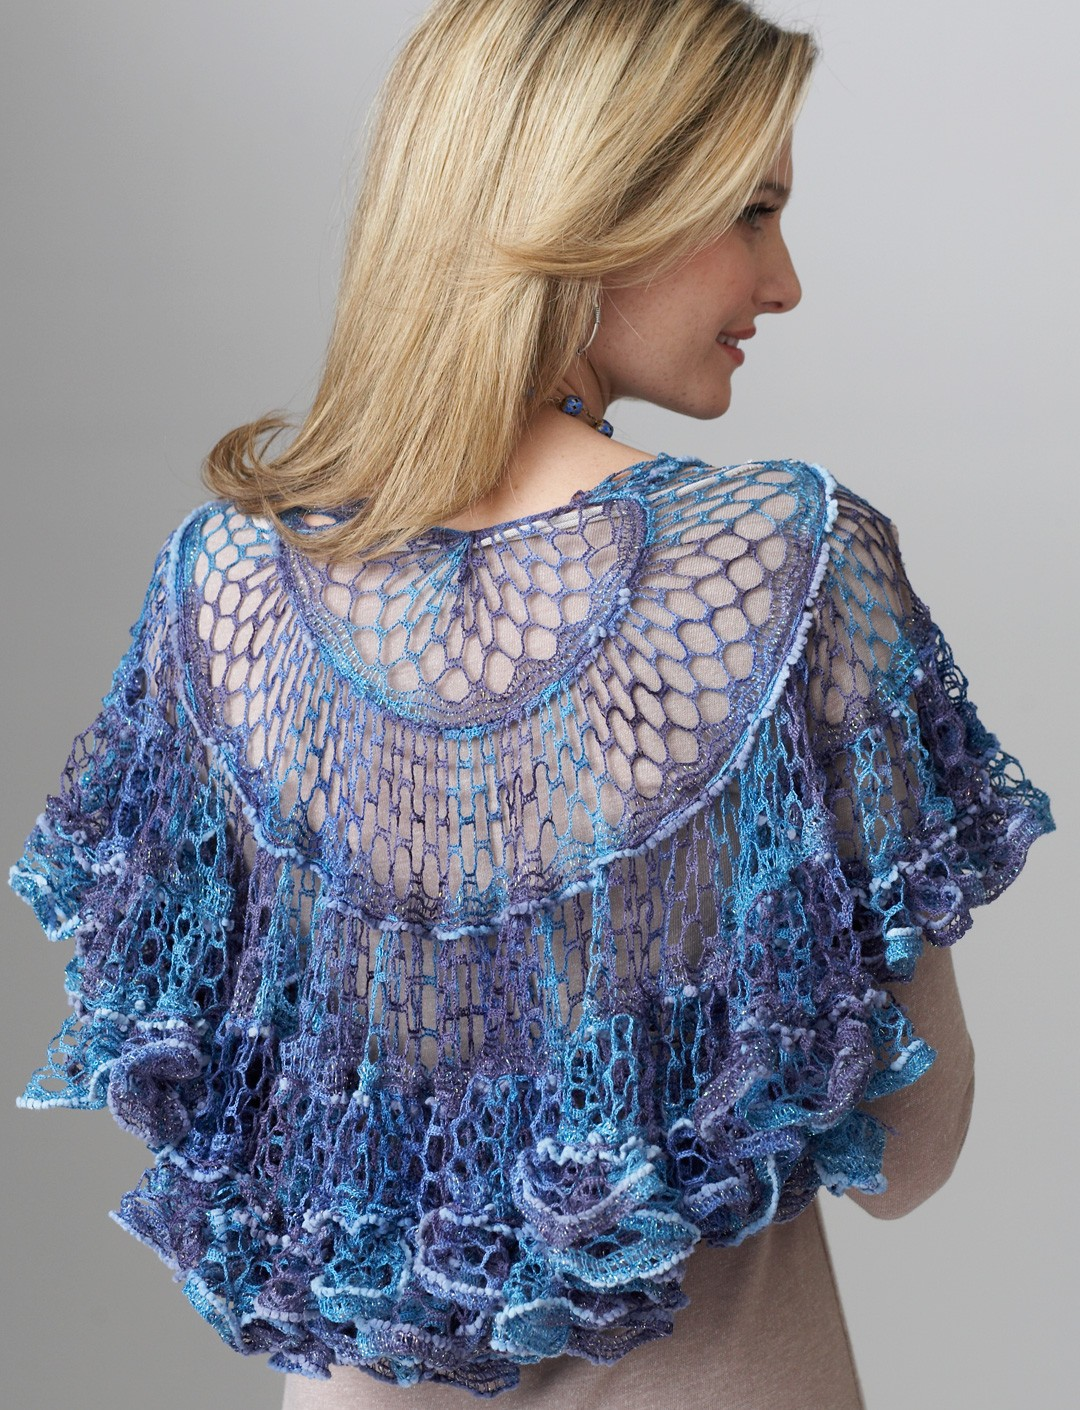 Patons Free Knitting Patterns : Shawl Yarnspirations